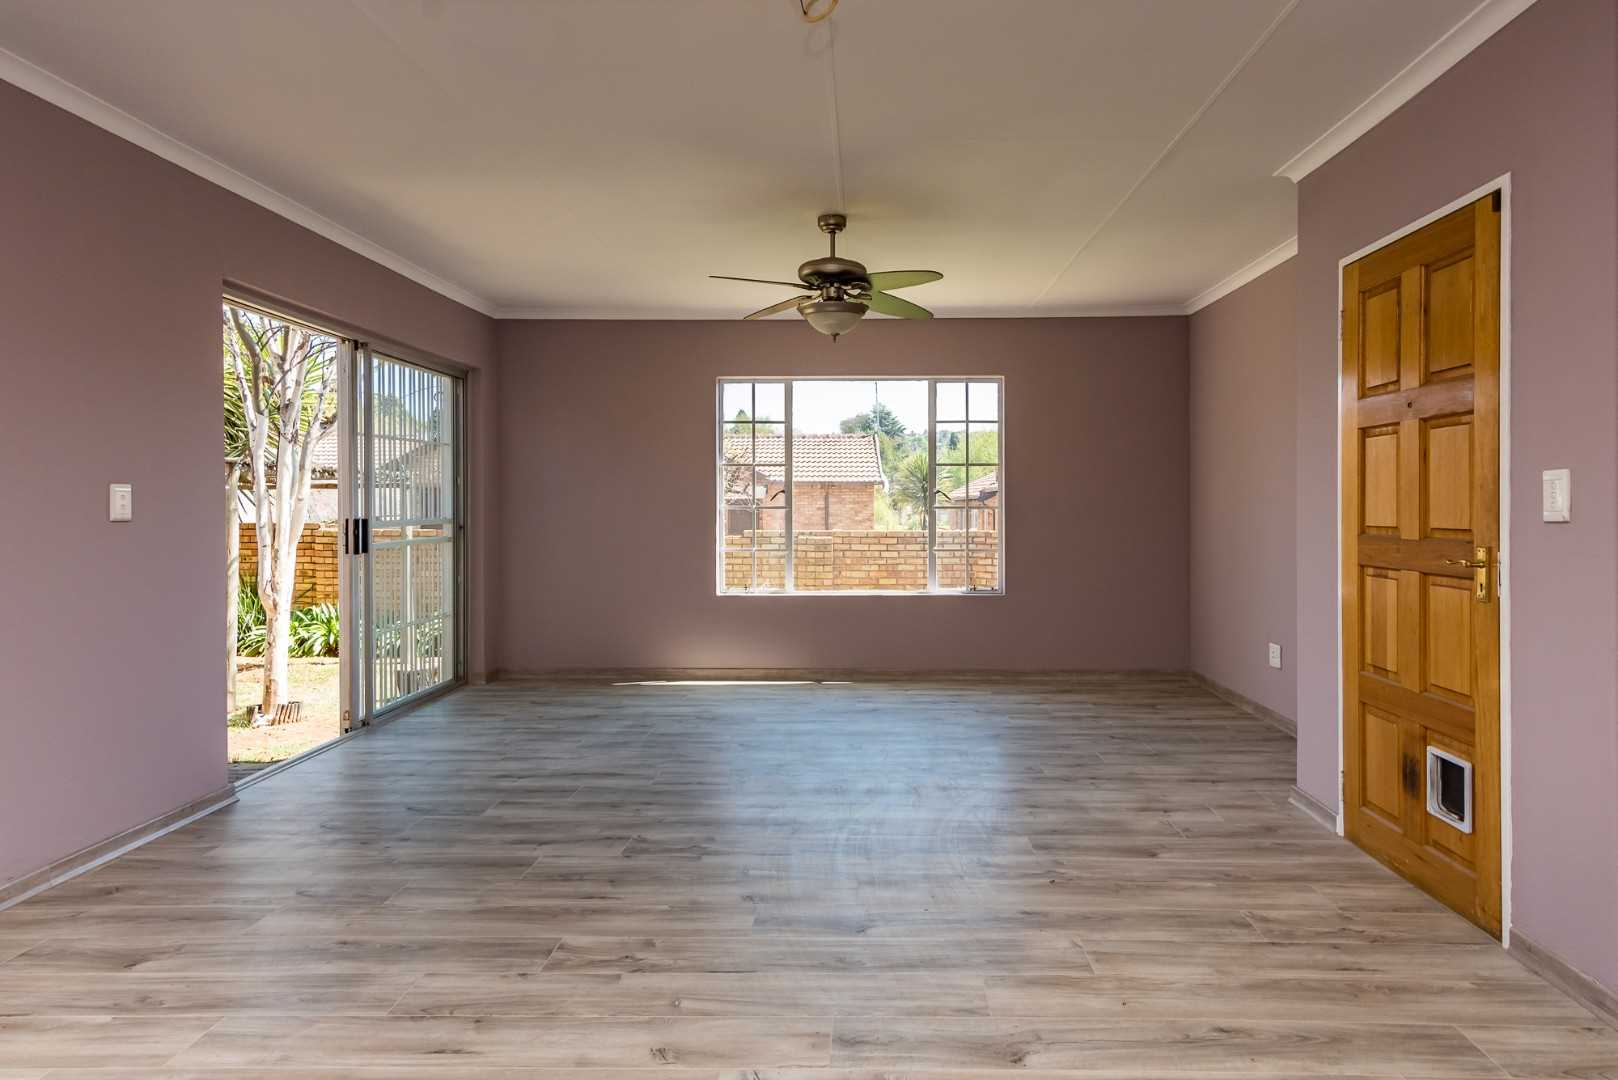 Grand entrance into spacious living areas with new laminating flooring and newly painted